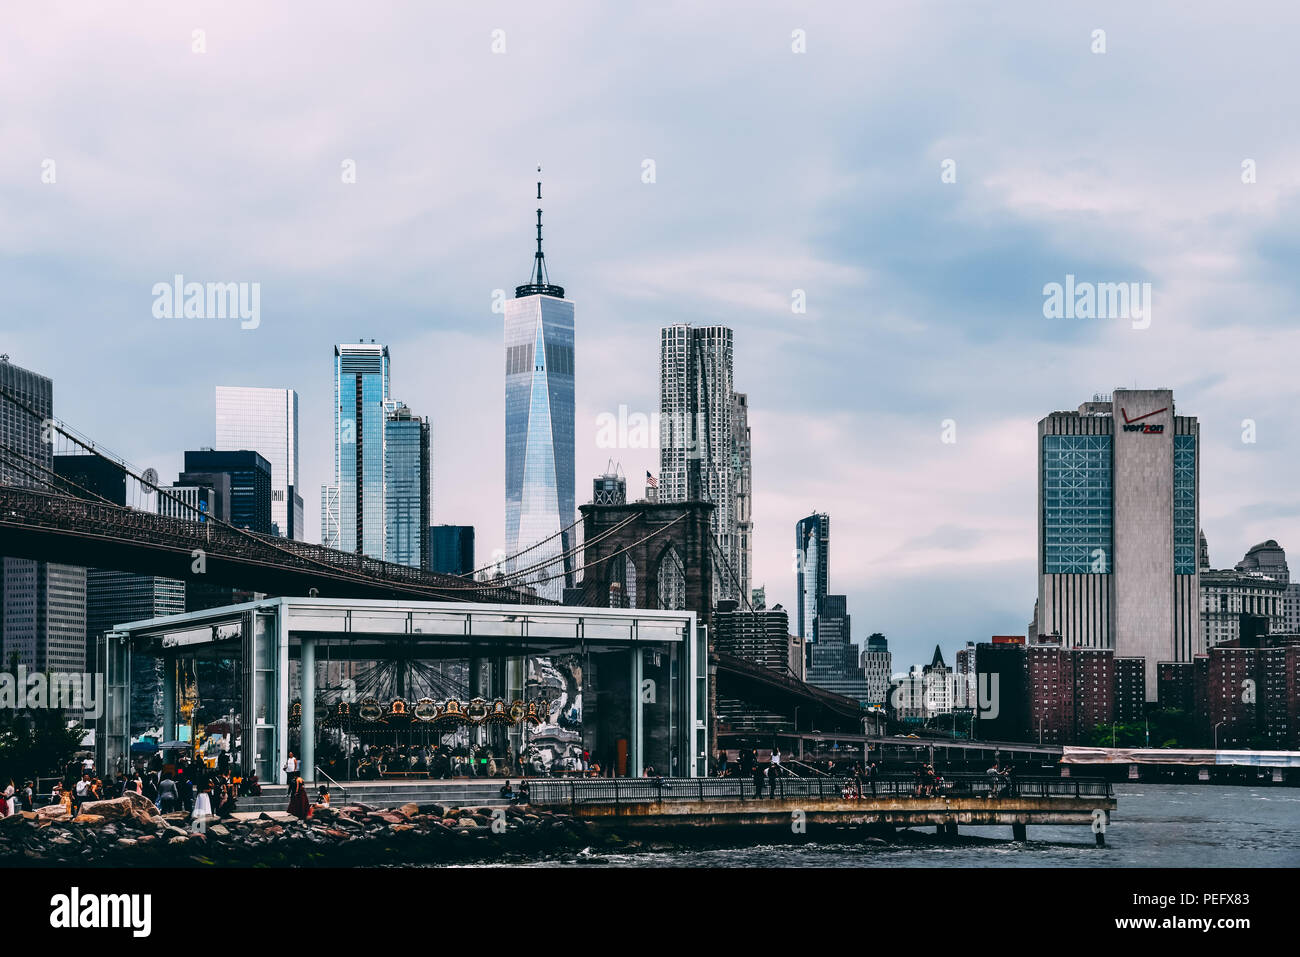 New York City, USA - June 20, 2018: Scenic view of skyline from promenade by East River in DUMBO, Brooklyn - Stock Image